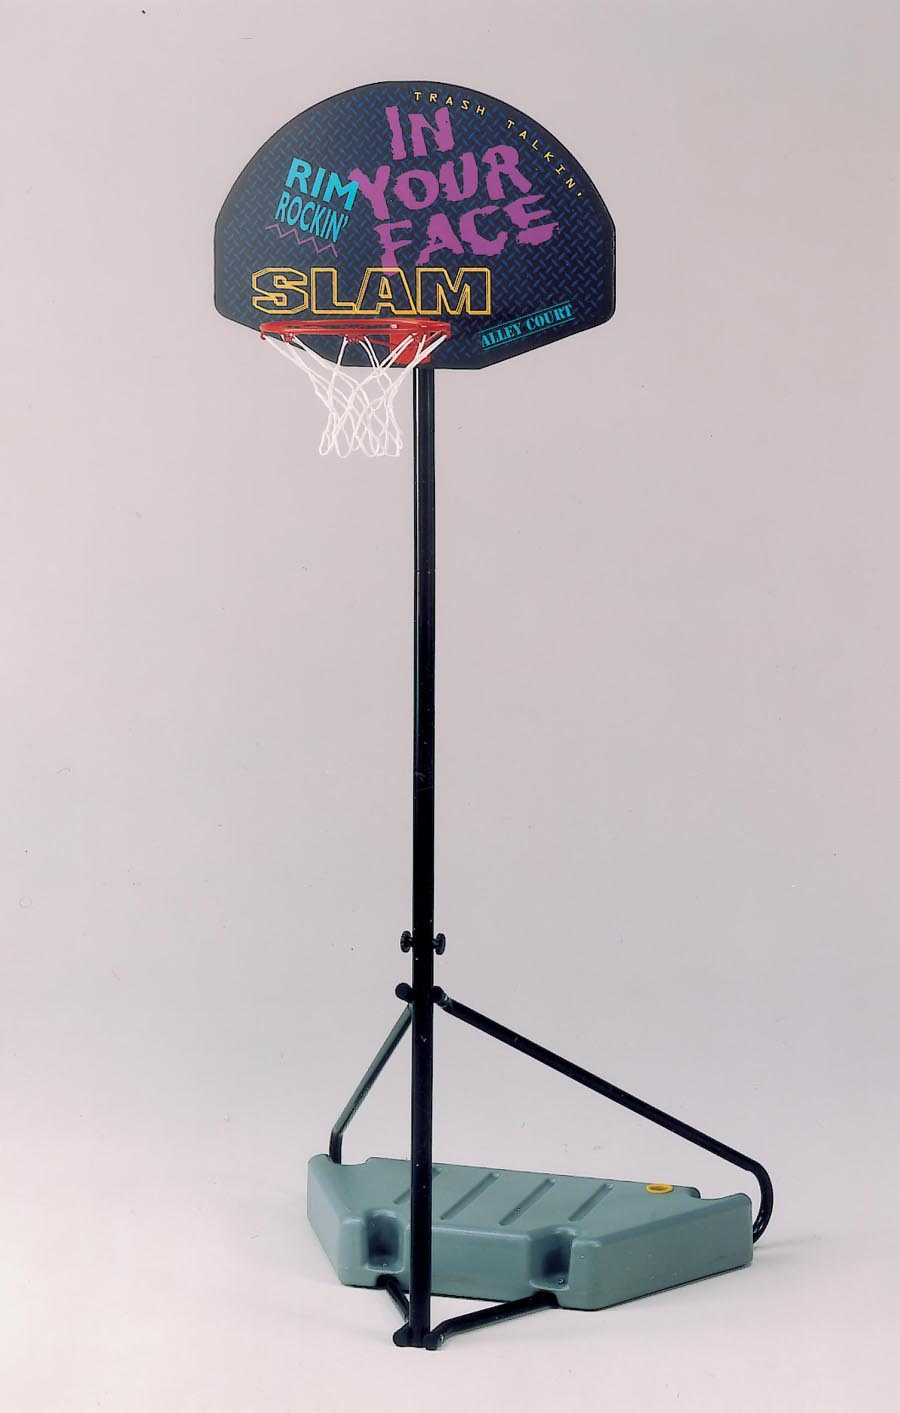 Picture of Recalled Escalade Basketball Hoop